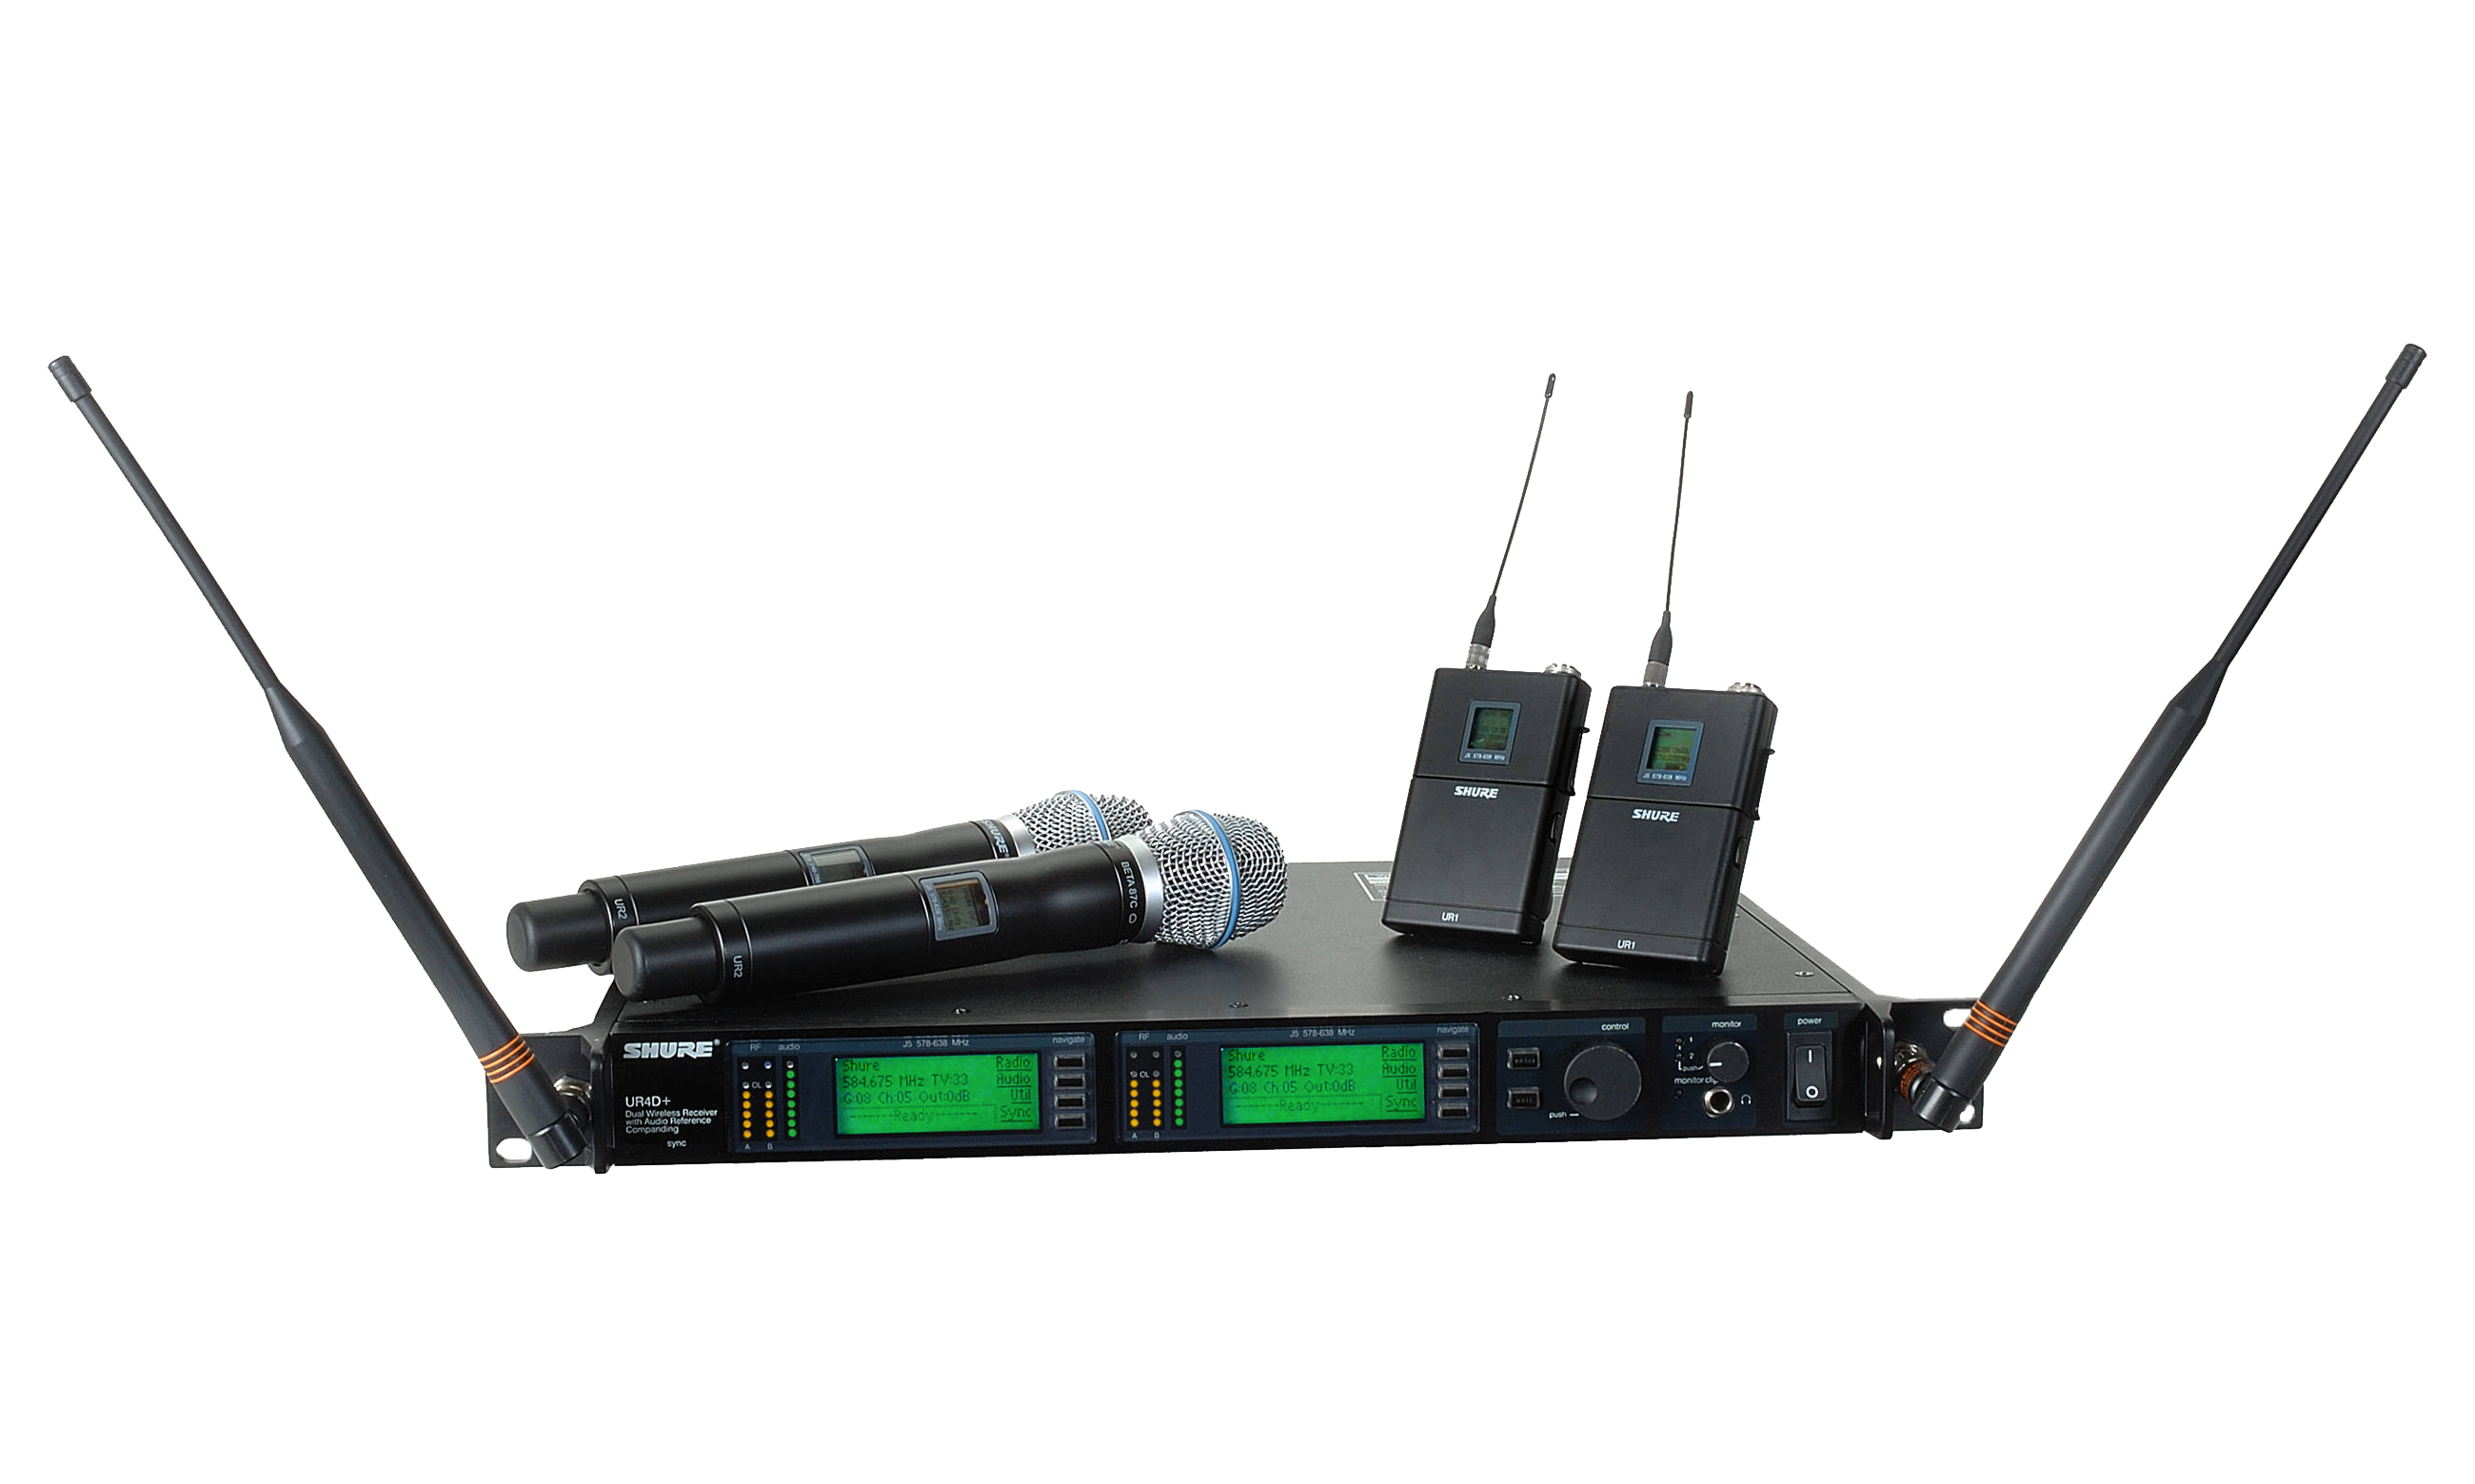 UHF-R + Wireless Systems